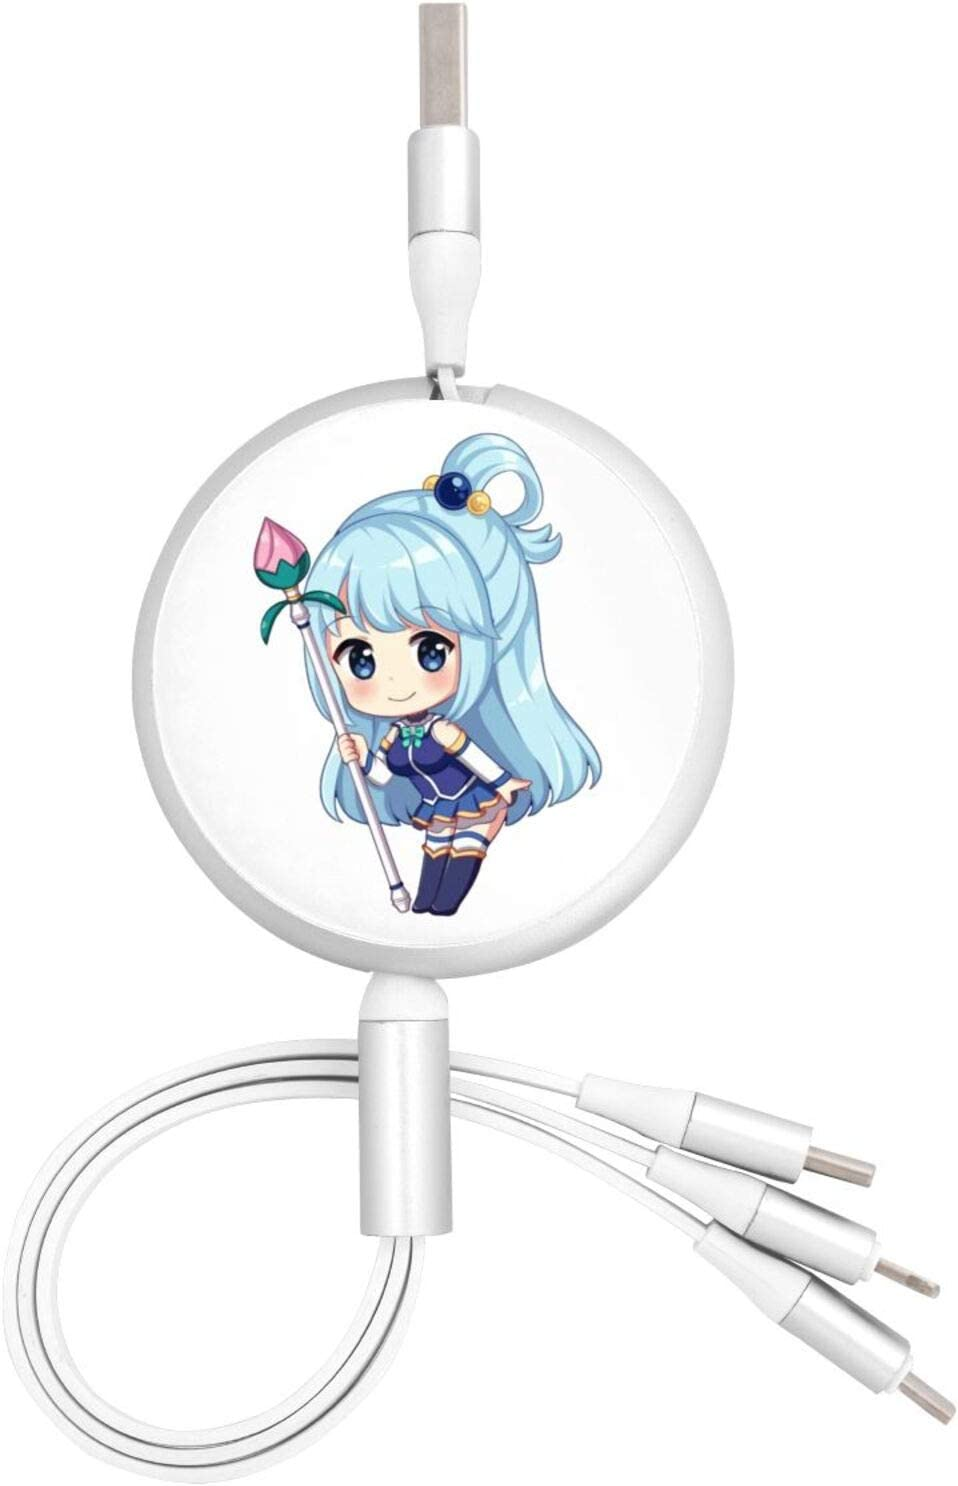 Anime Konosuba Chibi Aqua 3 in 1 Retractable Multiple Charging Cable 3.0a Fast Charger Cord with Phone//Type C//Micro USB Charge Port Adapter Compatible with Cell Phones Tablets and More